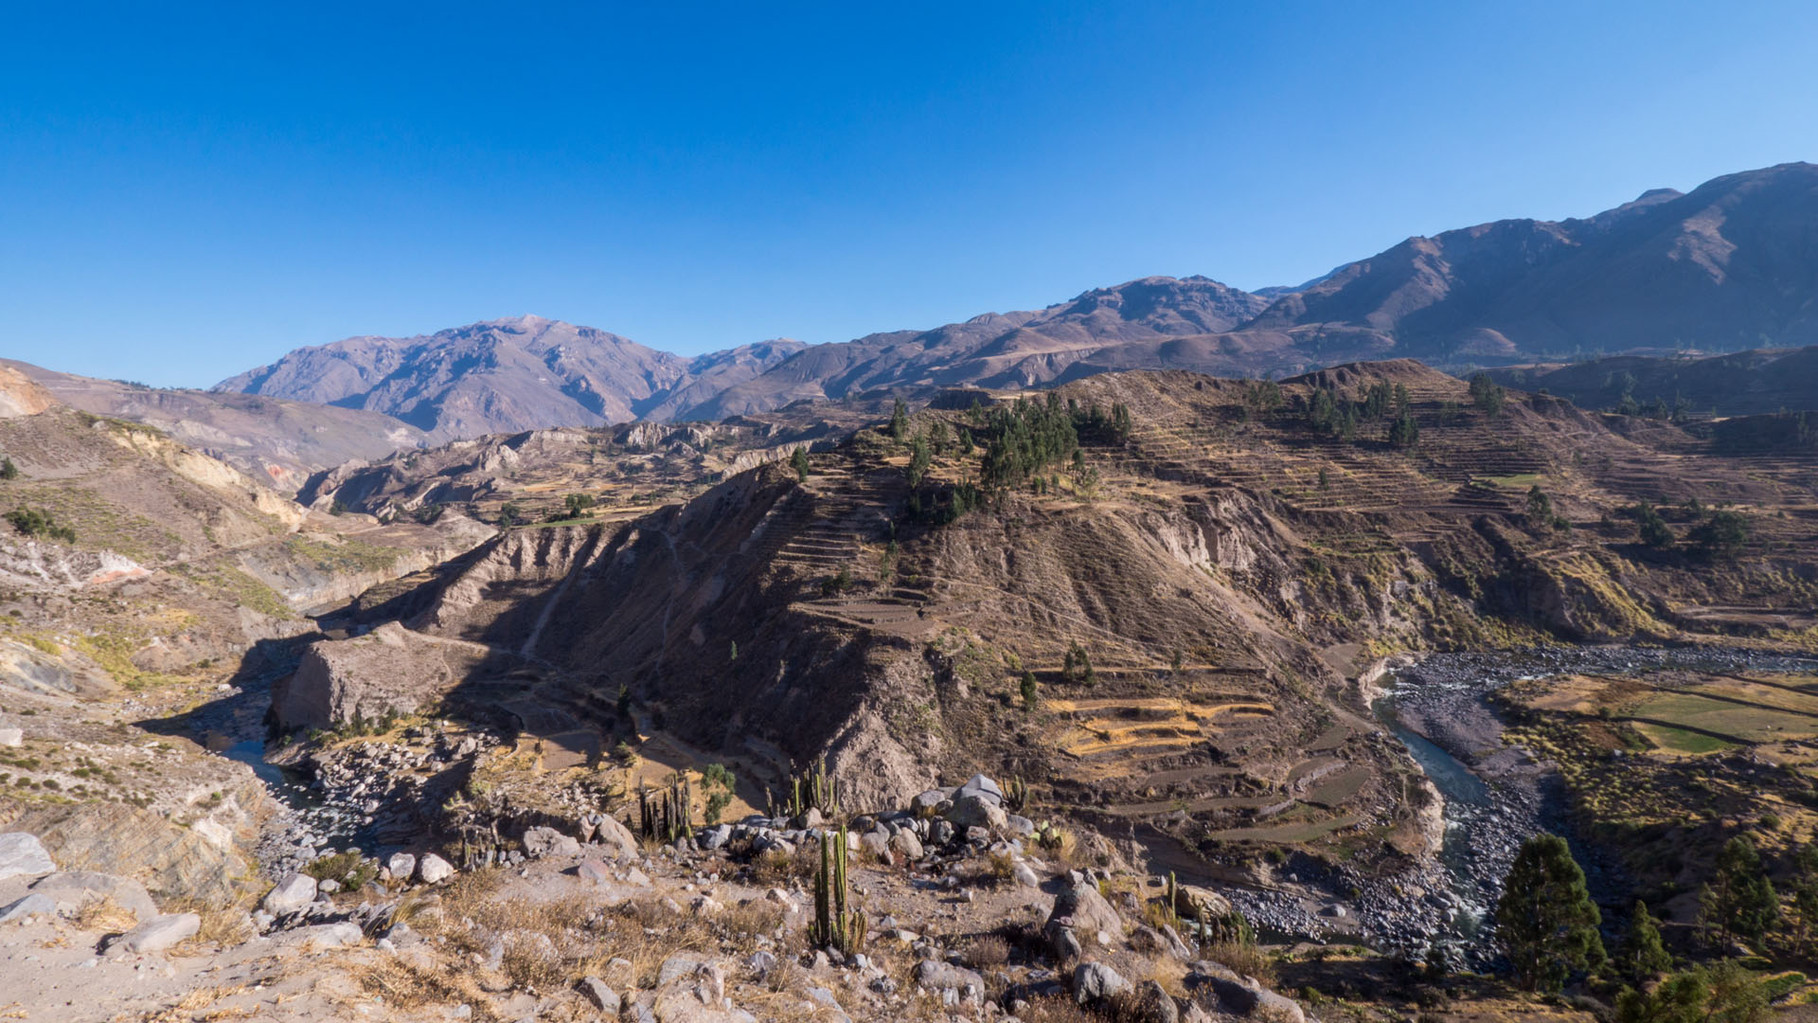 Colca canyon: One of the deepest canyons worldwide